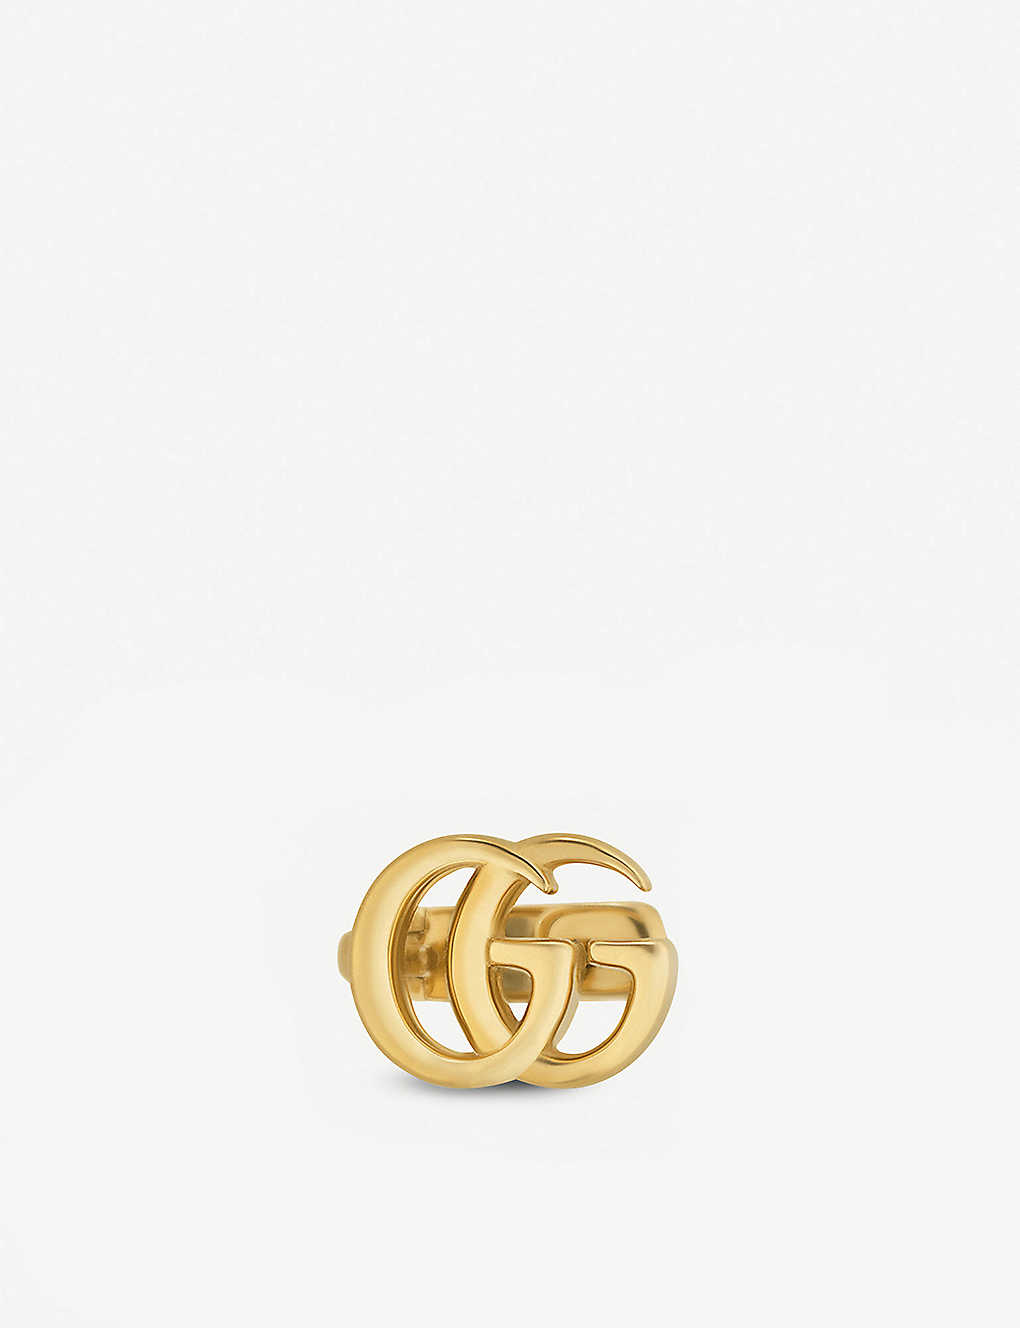 GUCCI 18CT YELLOW GOLD TISSUE STUD EARRINGS